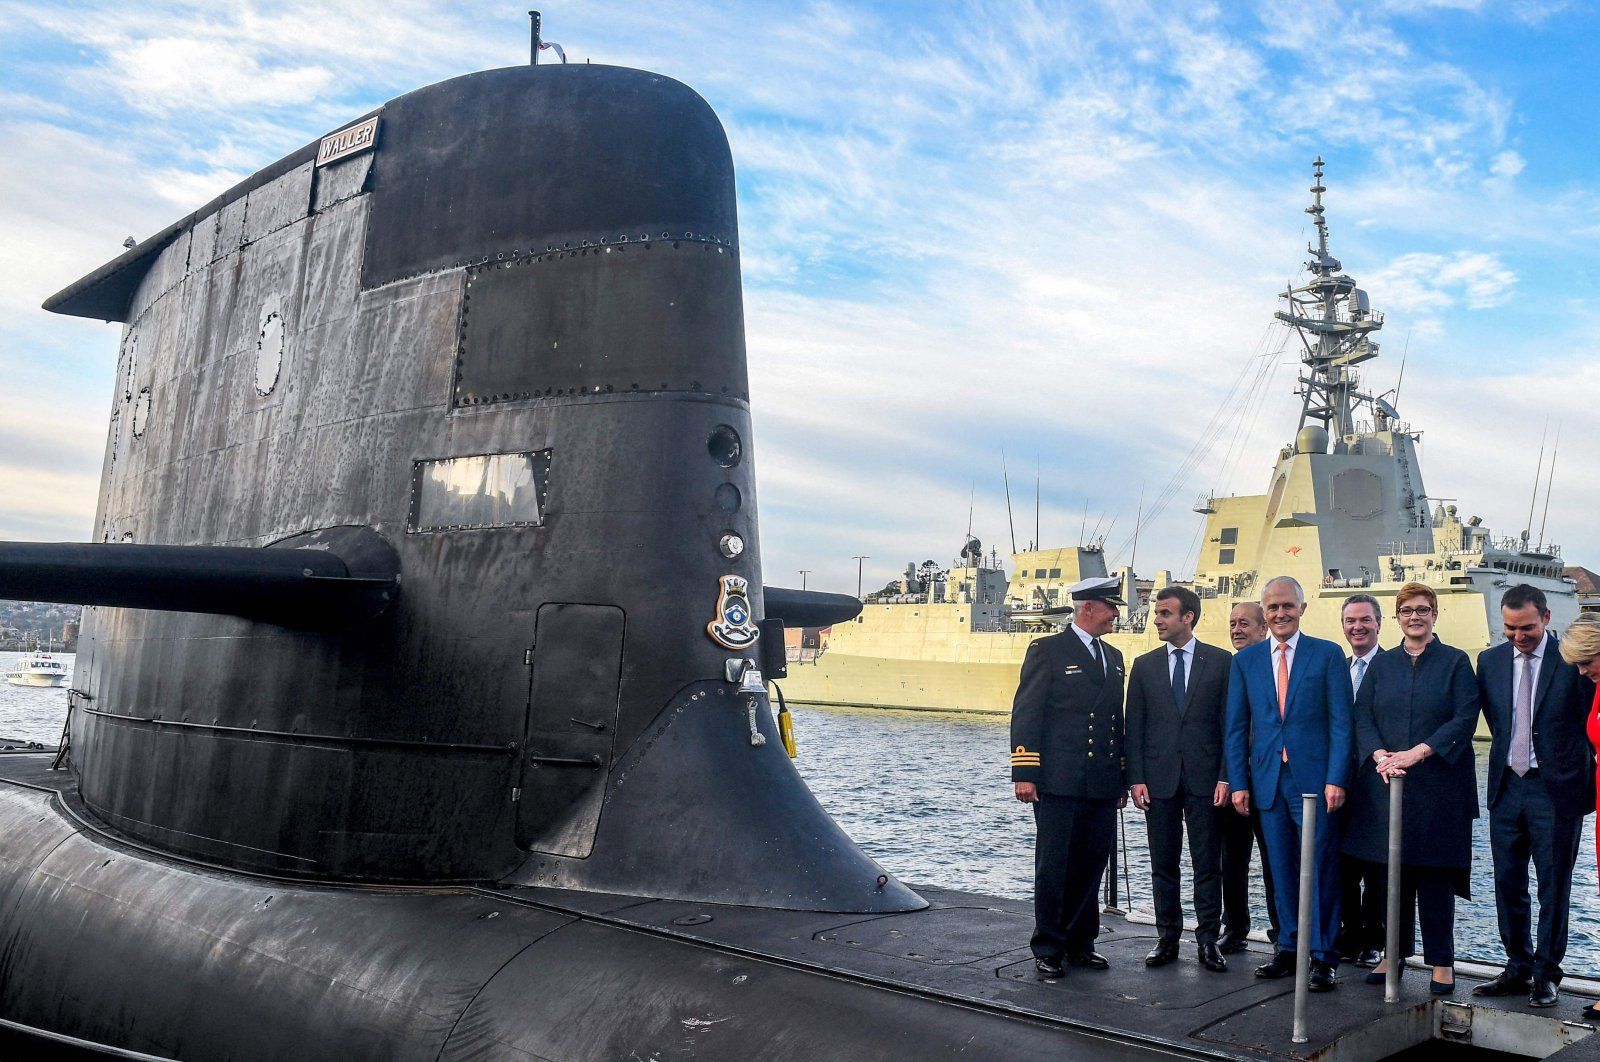 A file photo shows French President Emmanuel Macron (2L) and Australian Prime Minister Malcolm Turnbull (C) standing on the deck of HMAS Waller, a Collins-class submarine operated by the Royal Australian Navy, at Garden Island in Sydney, Australia, May 2, 2018. (AFP Photo)